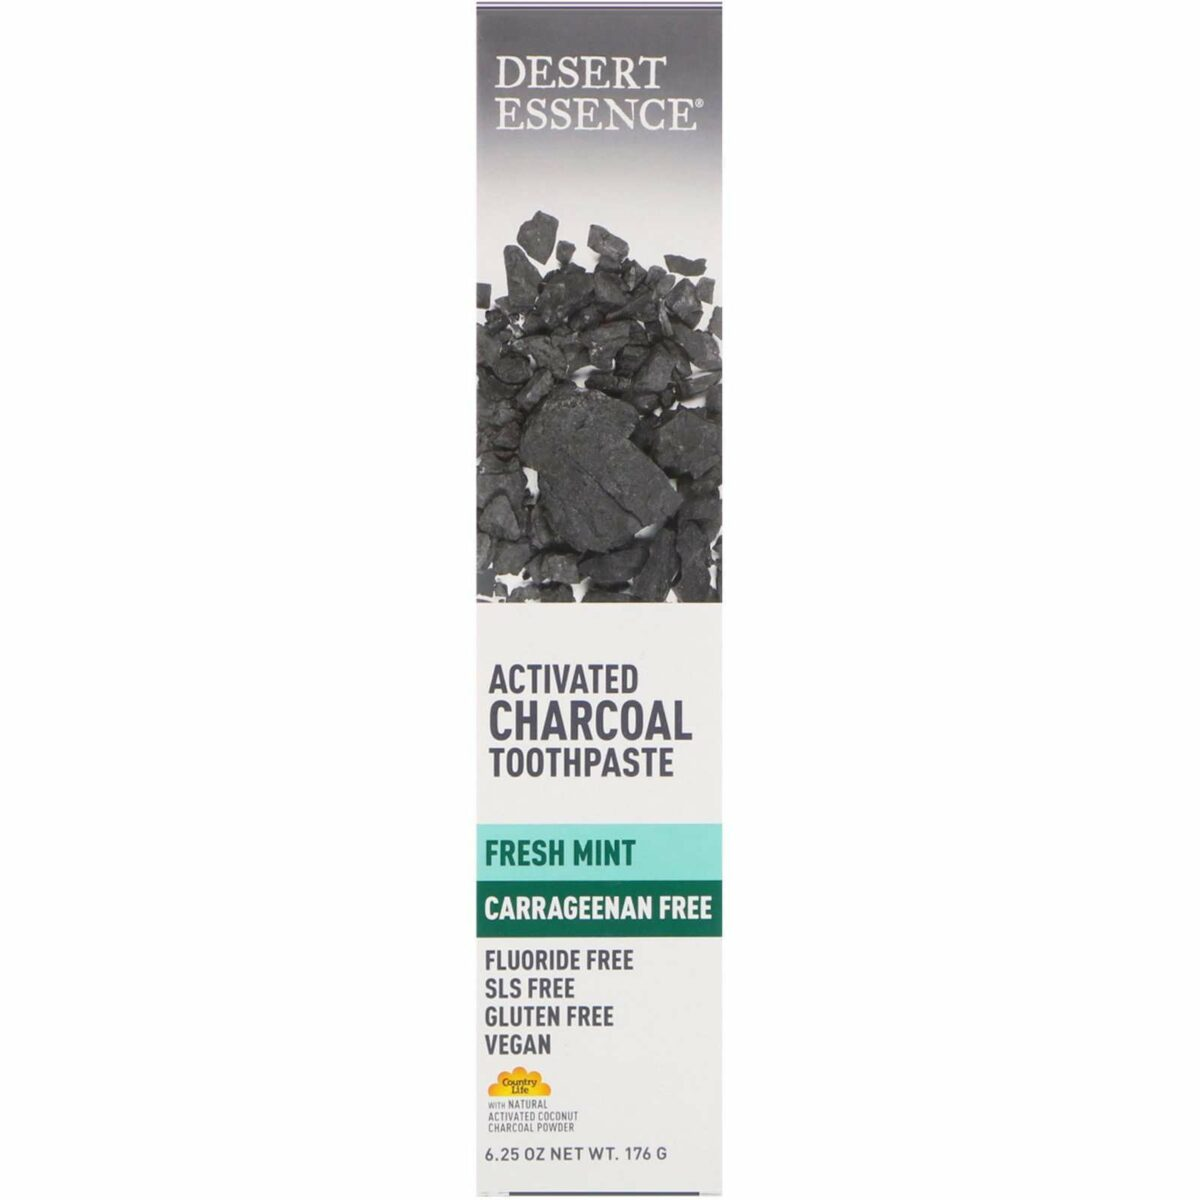 Desert Essence - Activated Charcoal Toothpaste, Fresh Mint - 6.25 oz (176 g) - AM VITAMINS